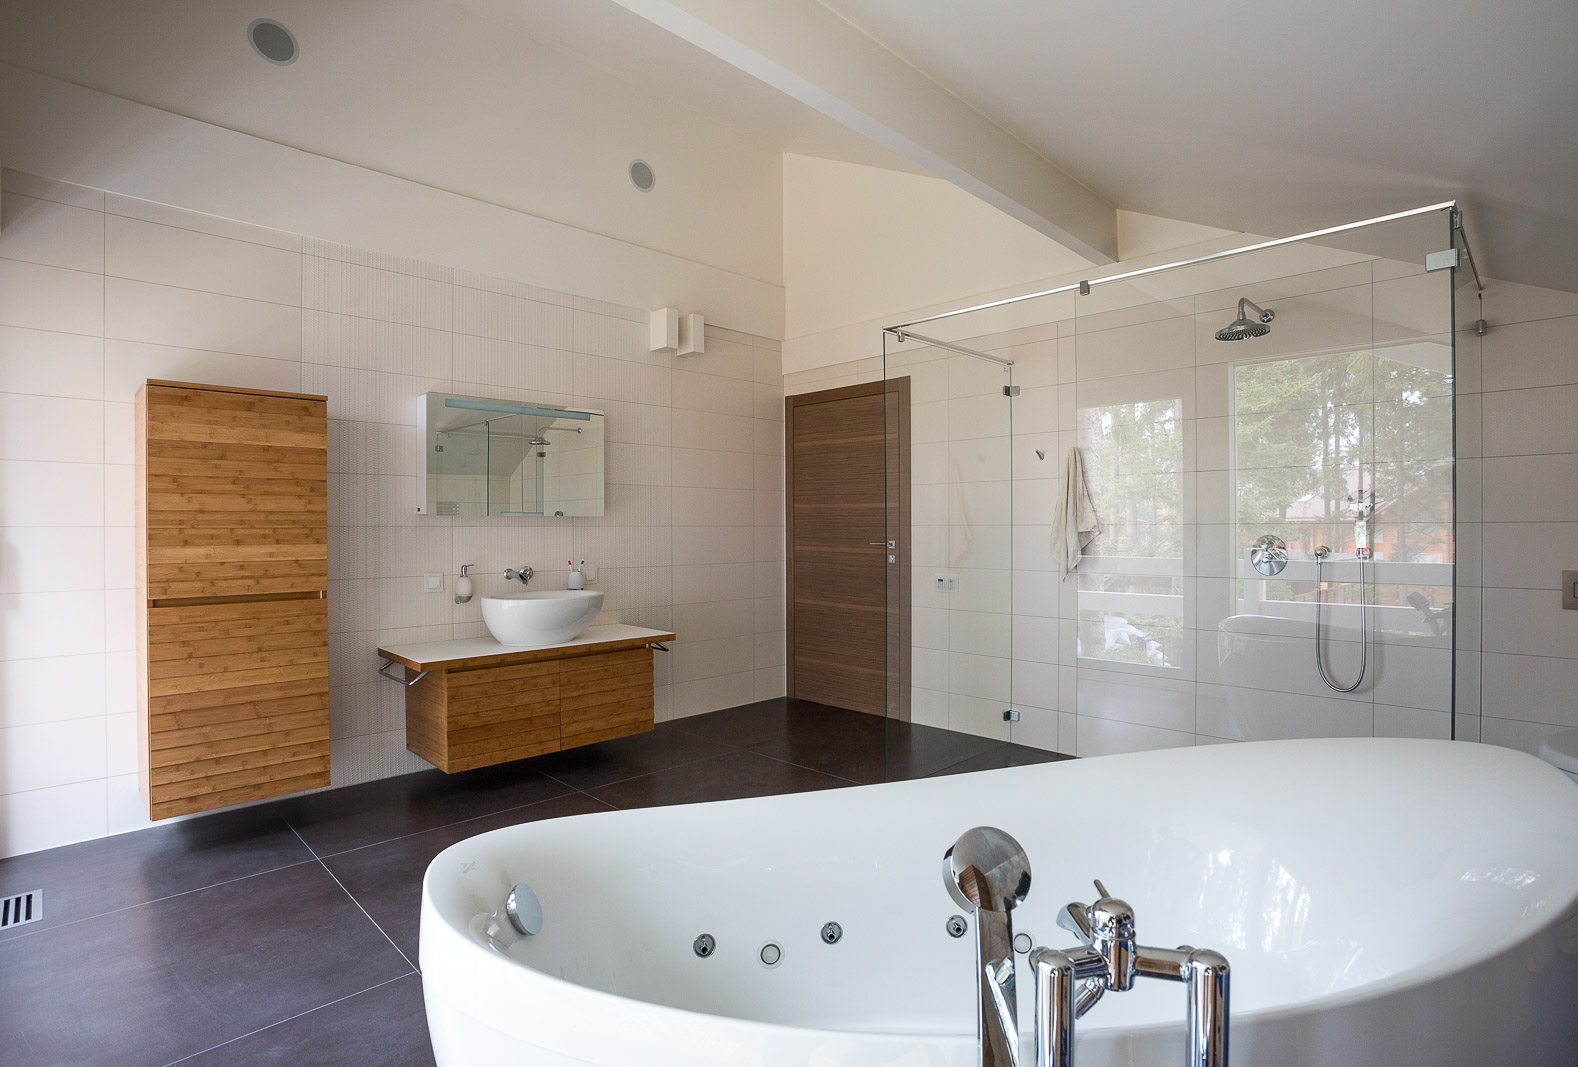 Interior of the master bathroom with wooden details